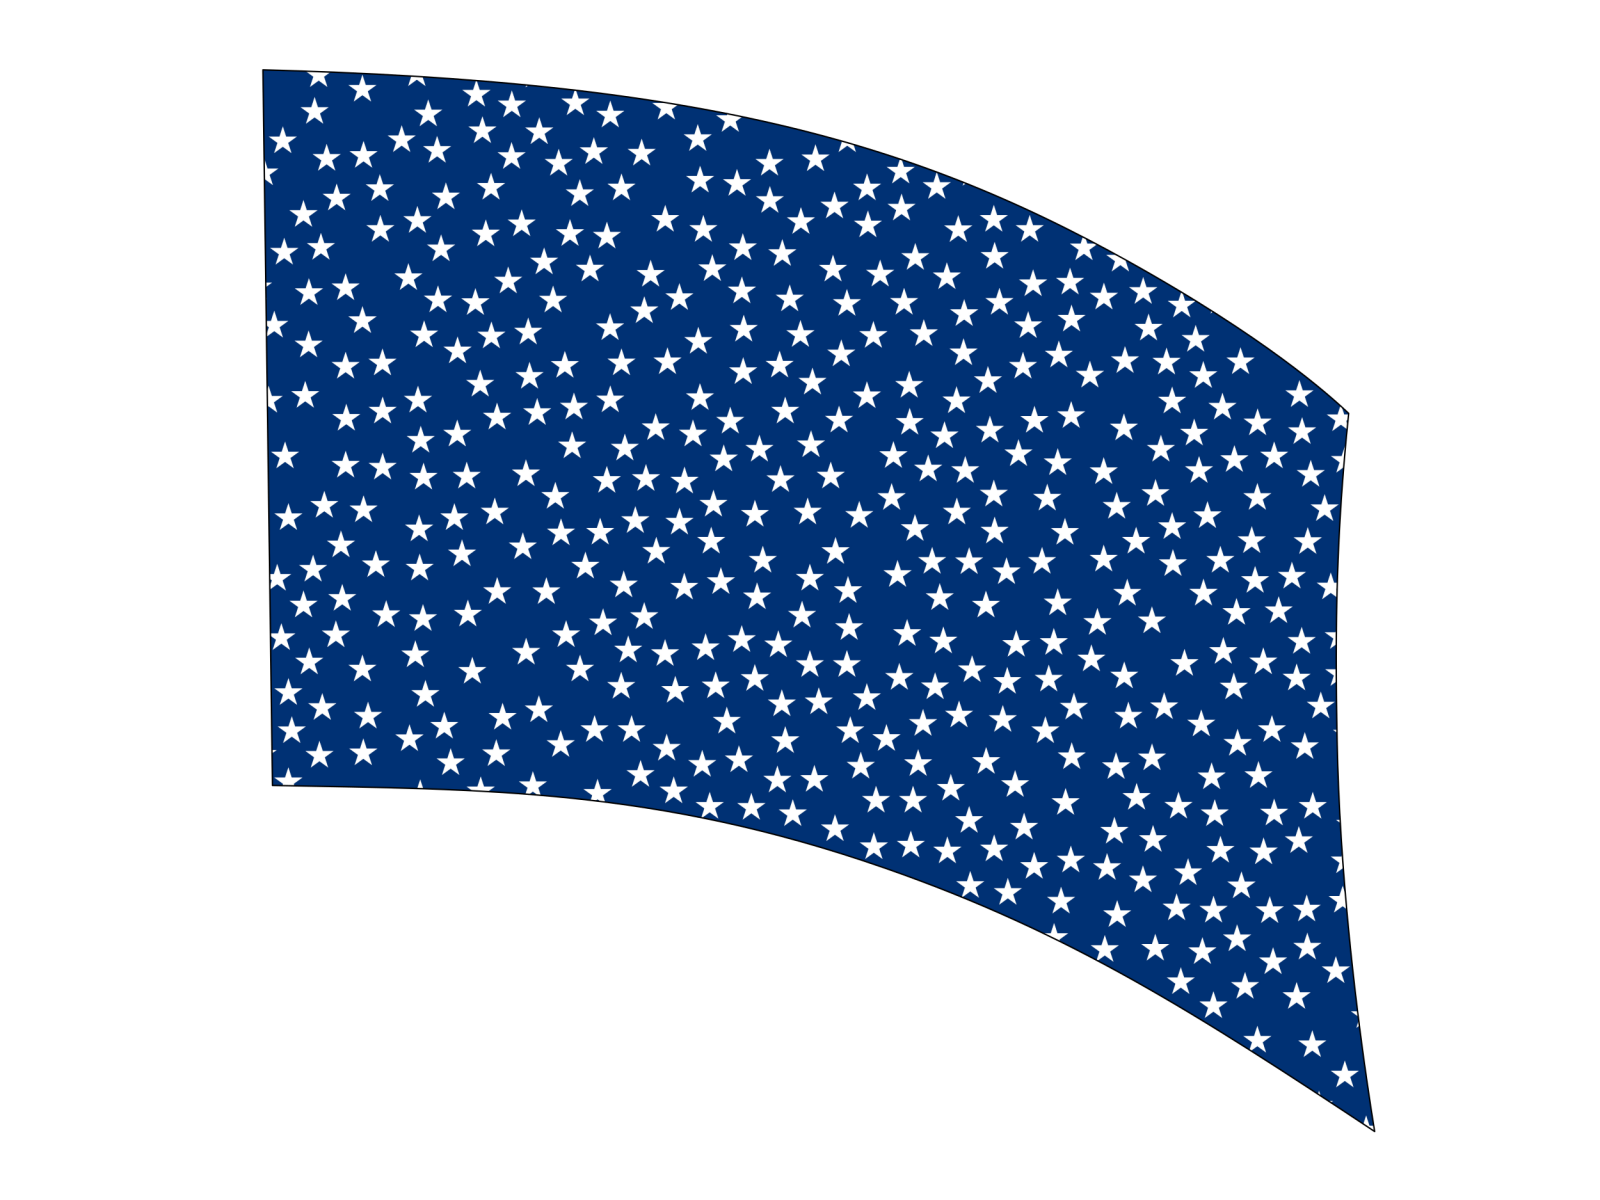 060212s - 36x52 Standard Small Stars on Blue